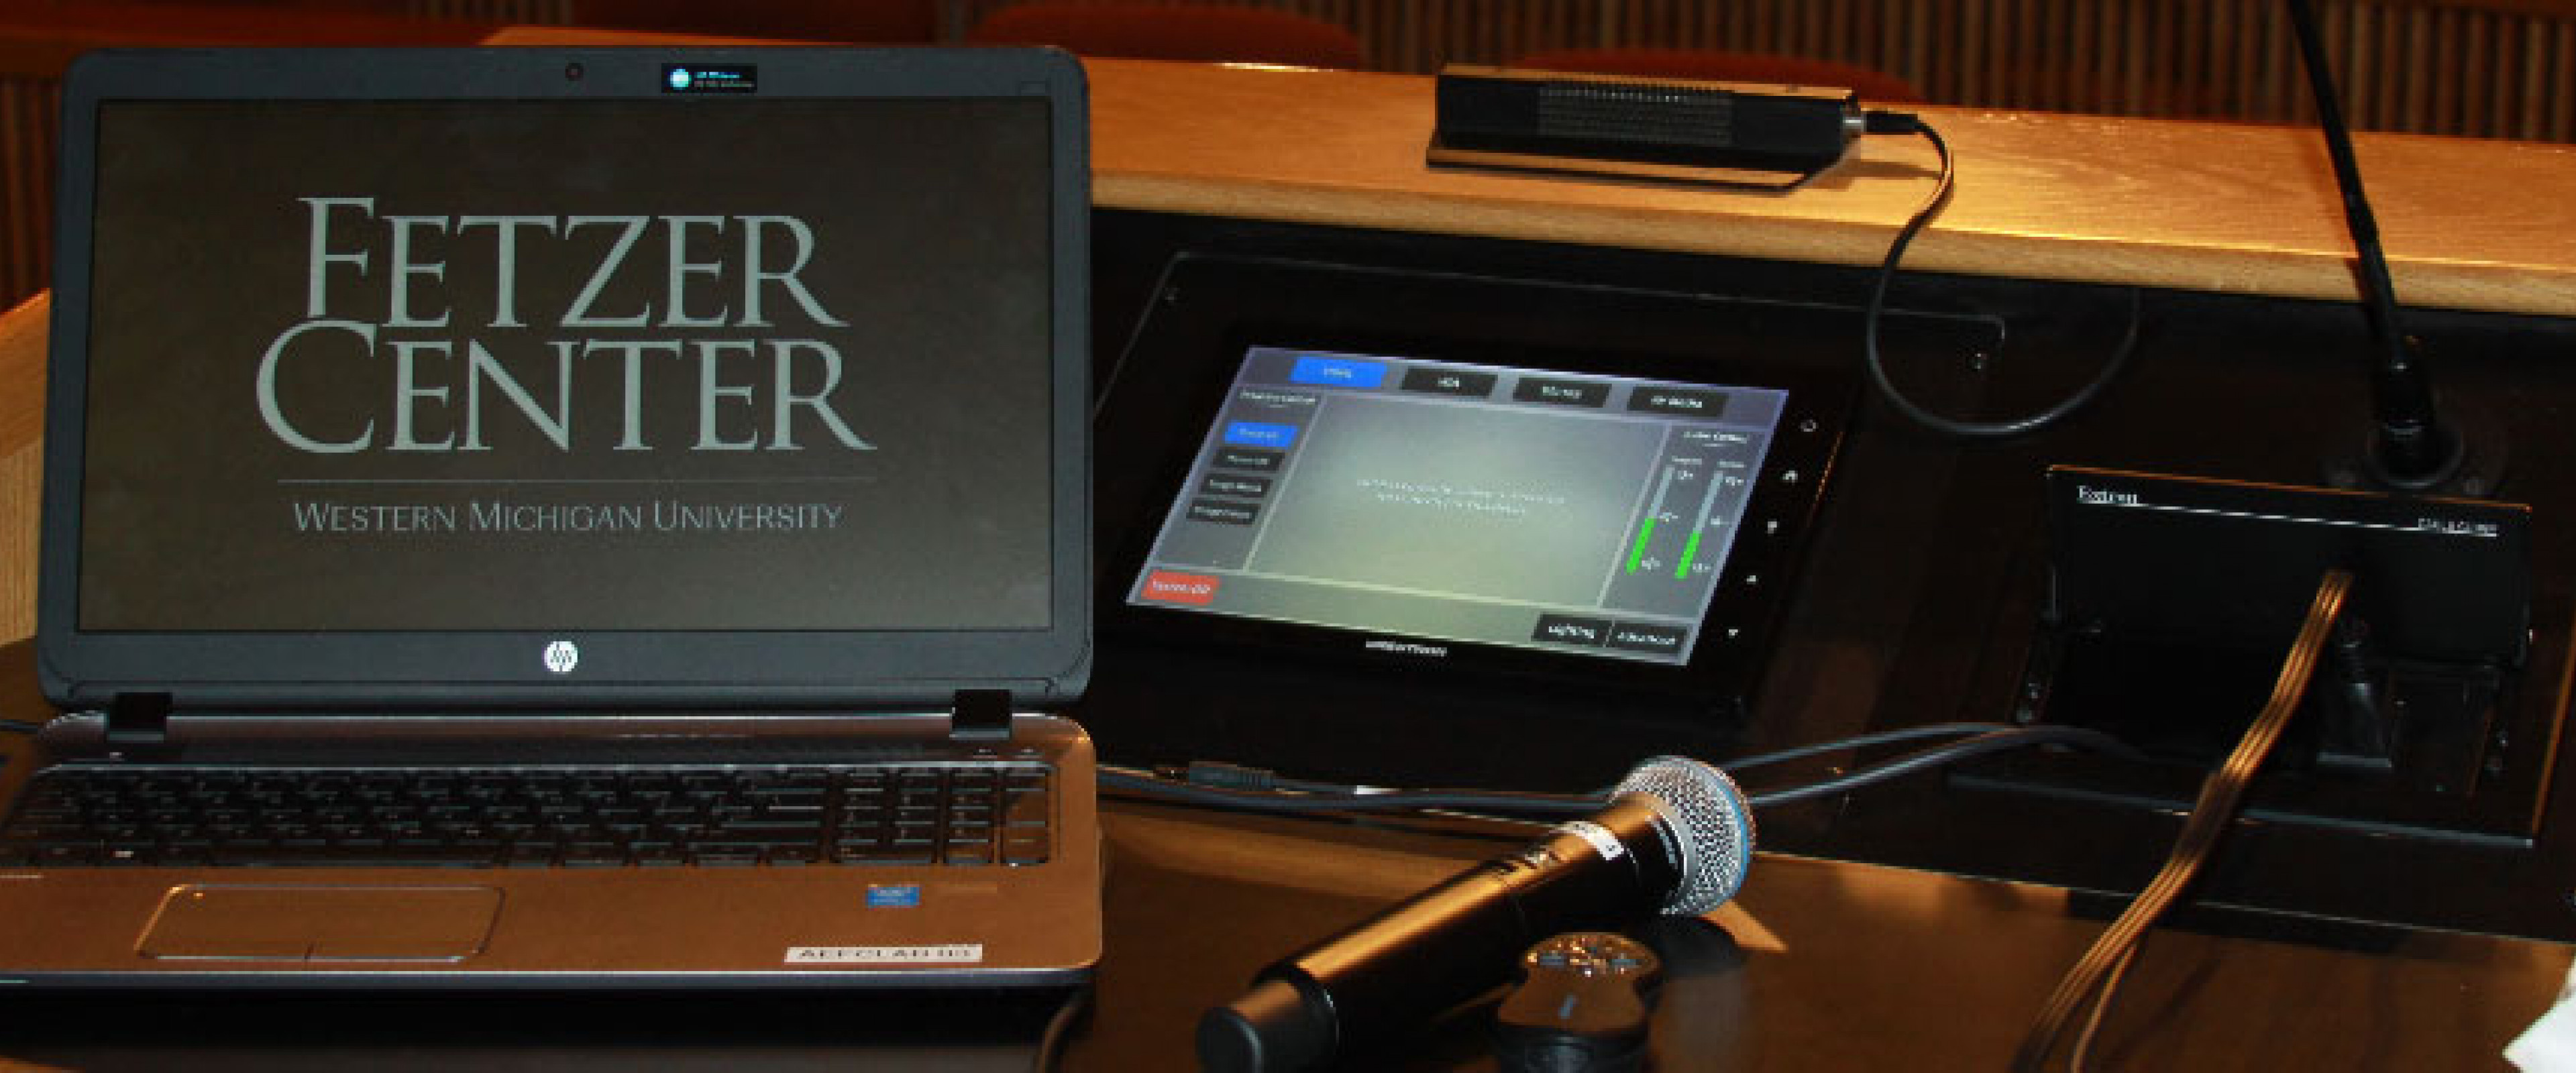 A laptop with Fetzer Center screen savor on a podium with microphone